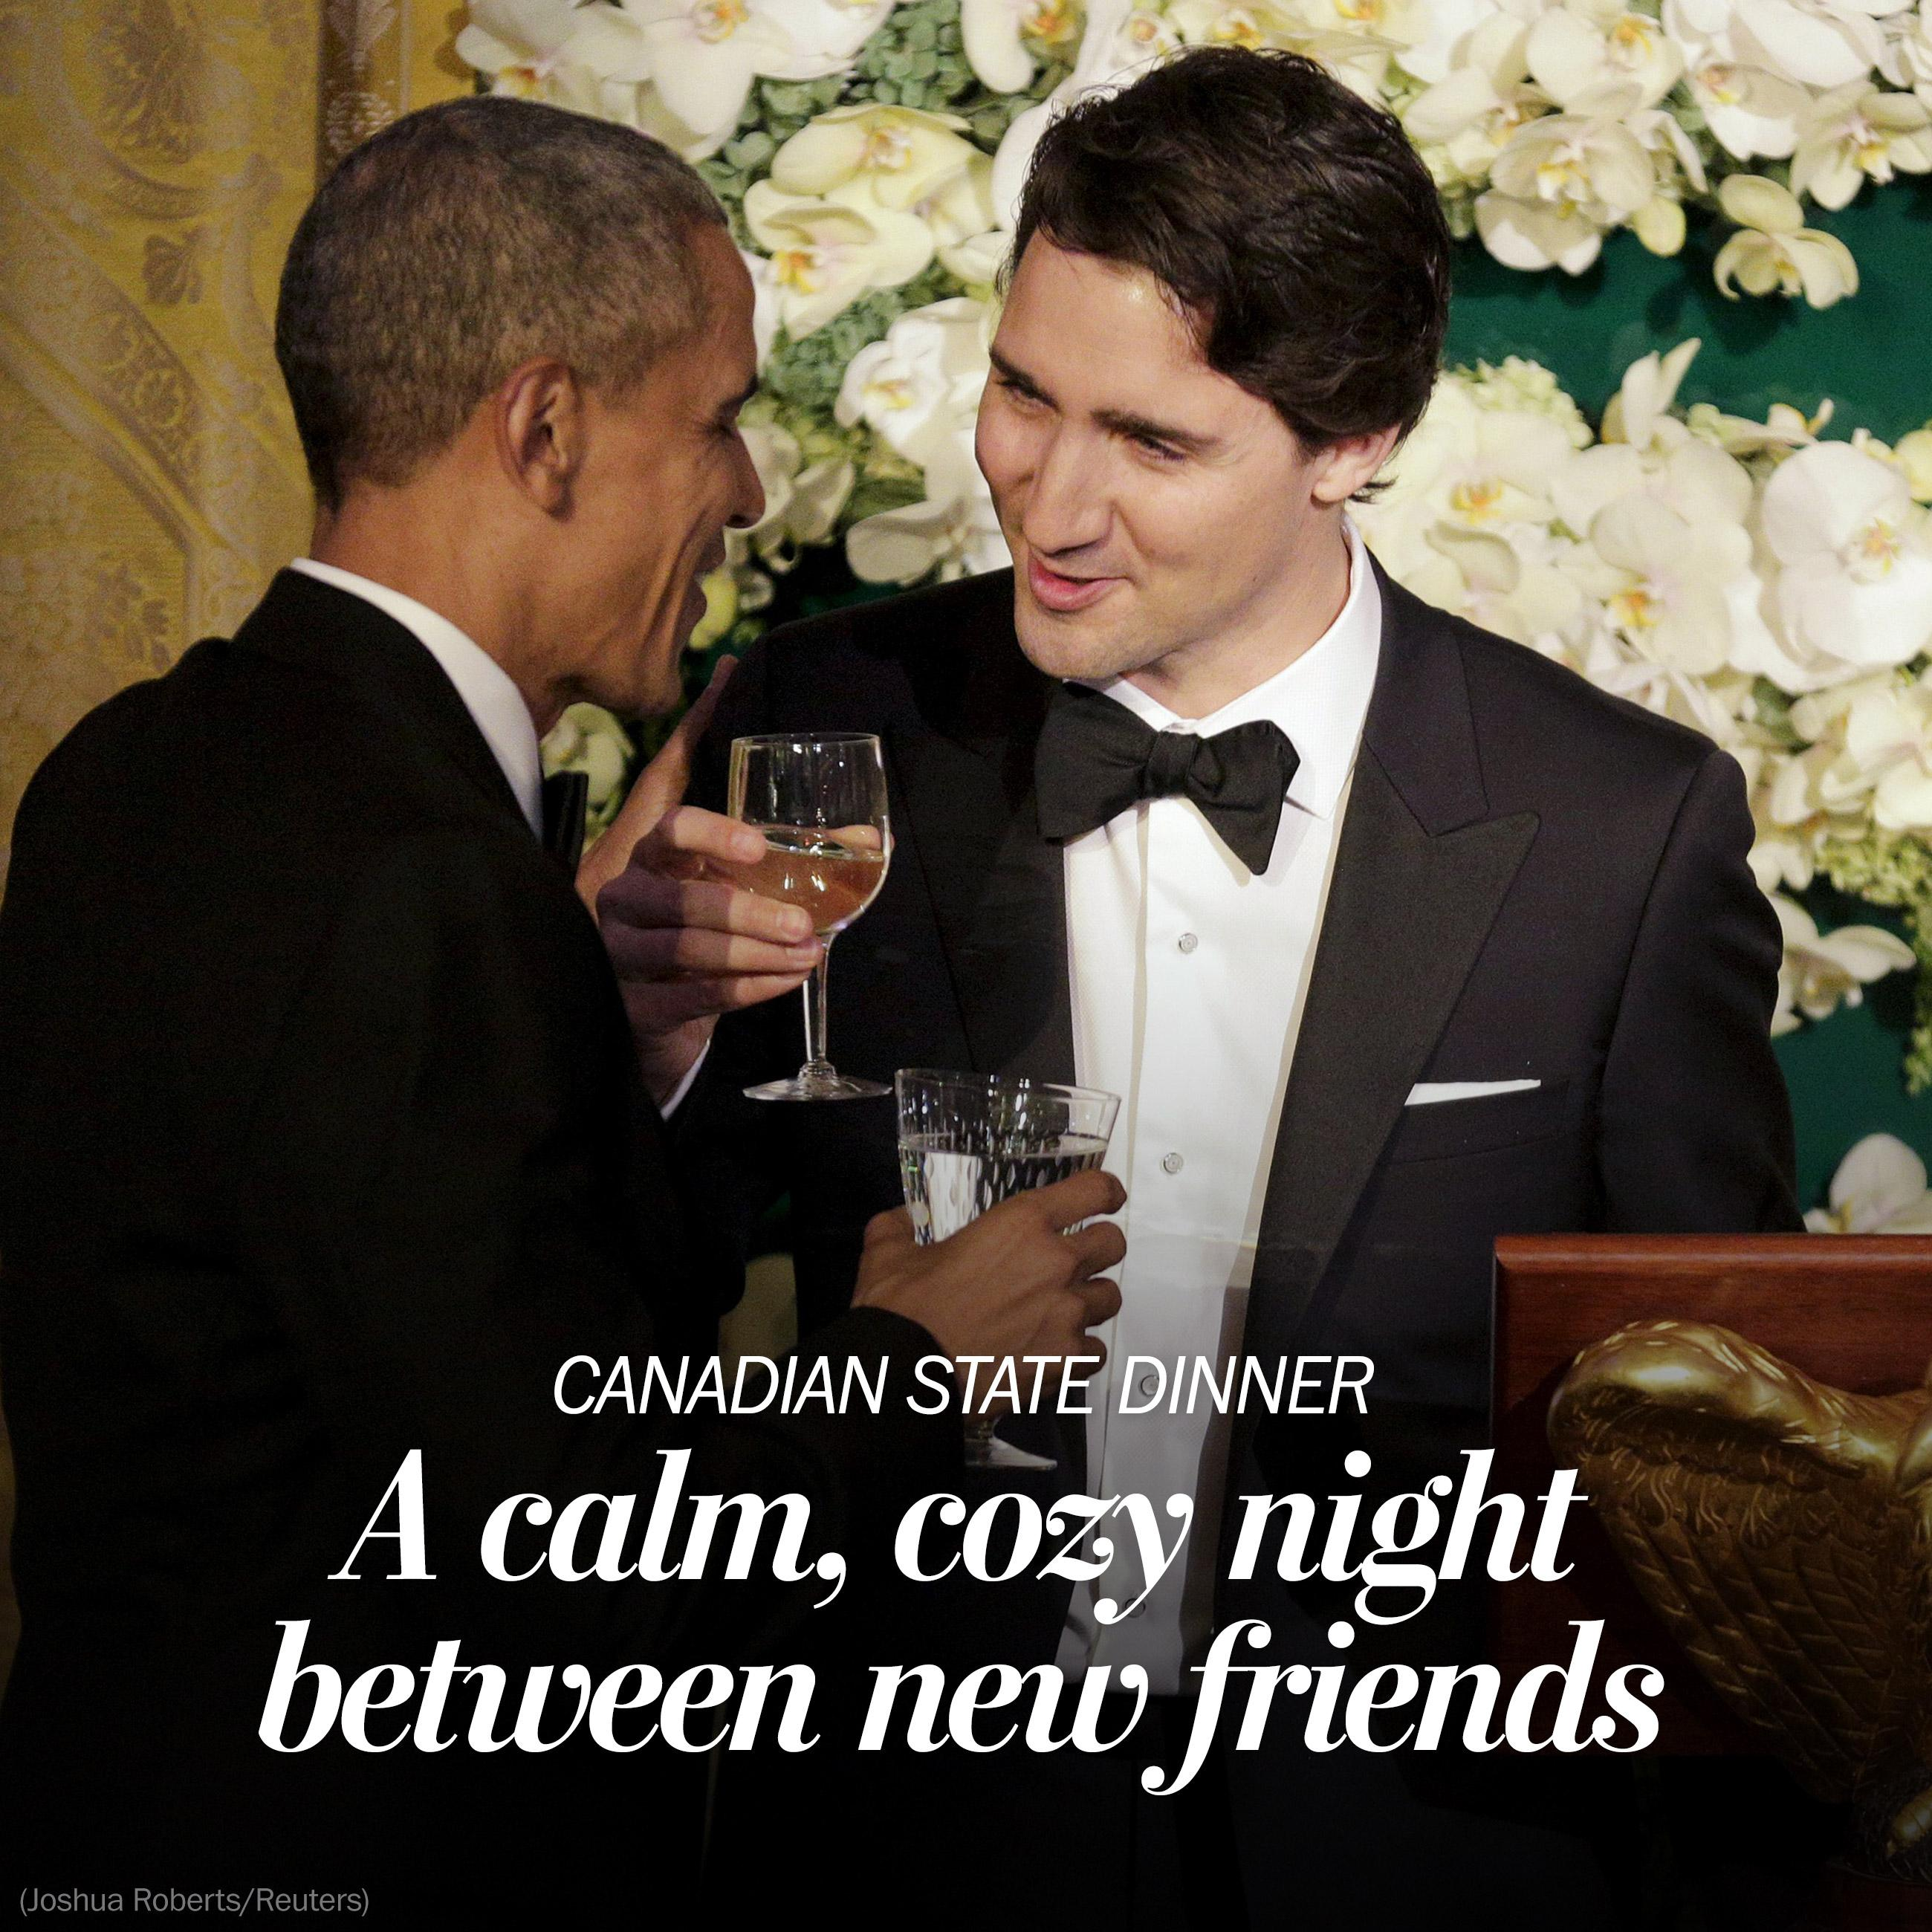 President Obama and PM Trudeau solidify 'special connection' between U.S. and Canada at State Dinner